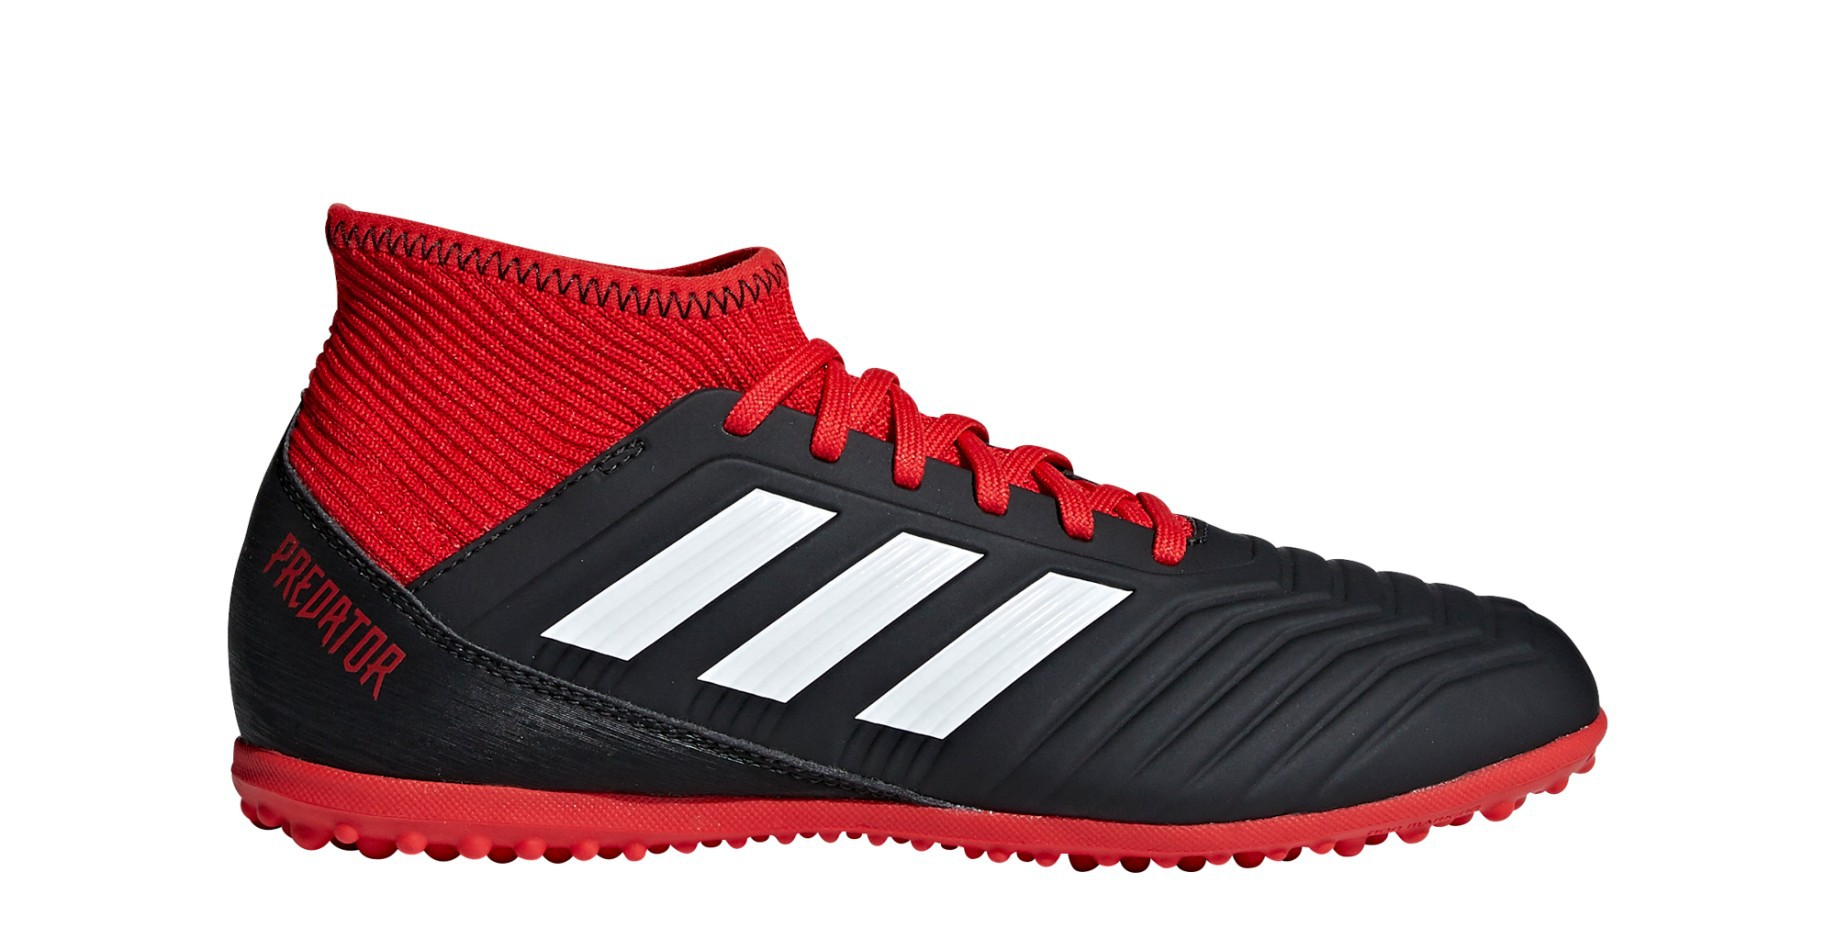 Shoes Soccer Kid Adidas Predator Tango 18.3 TF Team Mode Pack colore Red  Black - Adidas - SportIT.com 29f4388e462